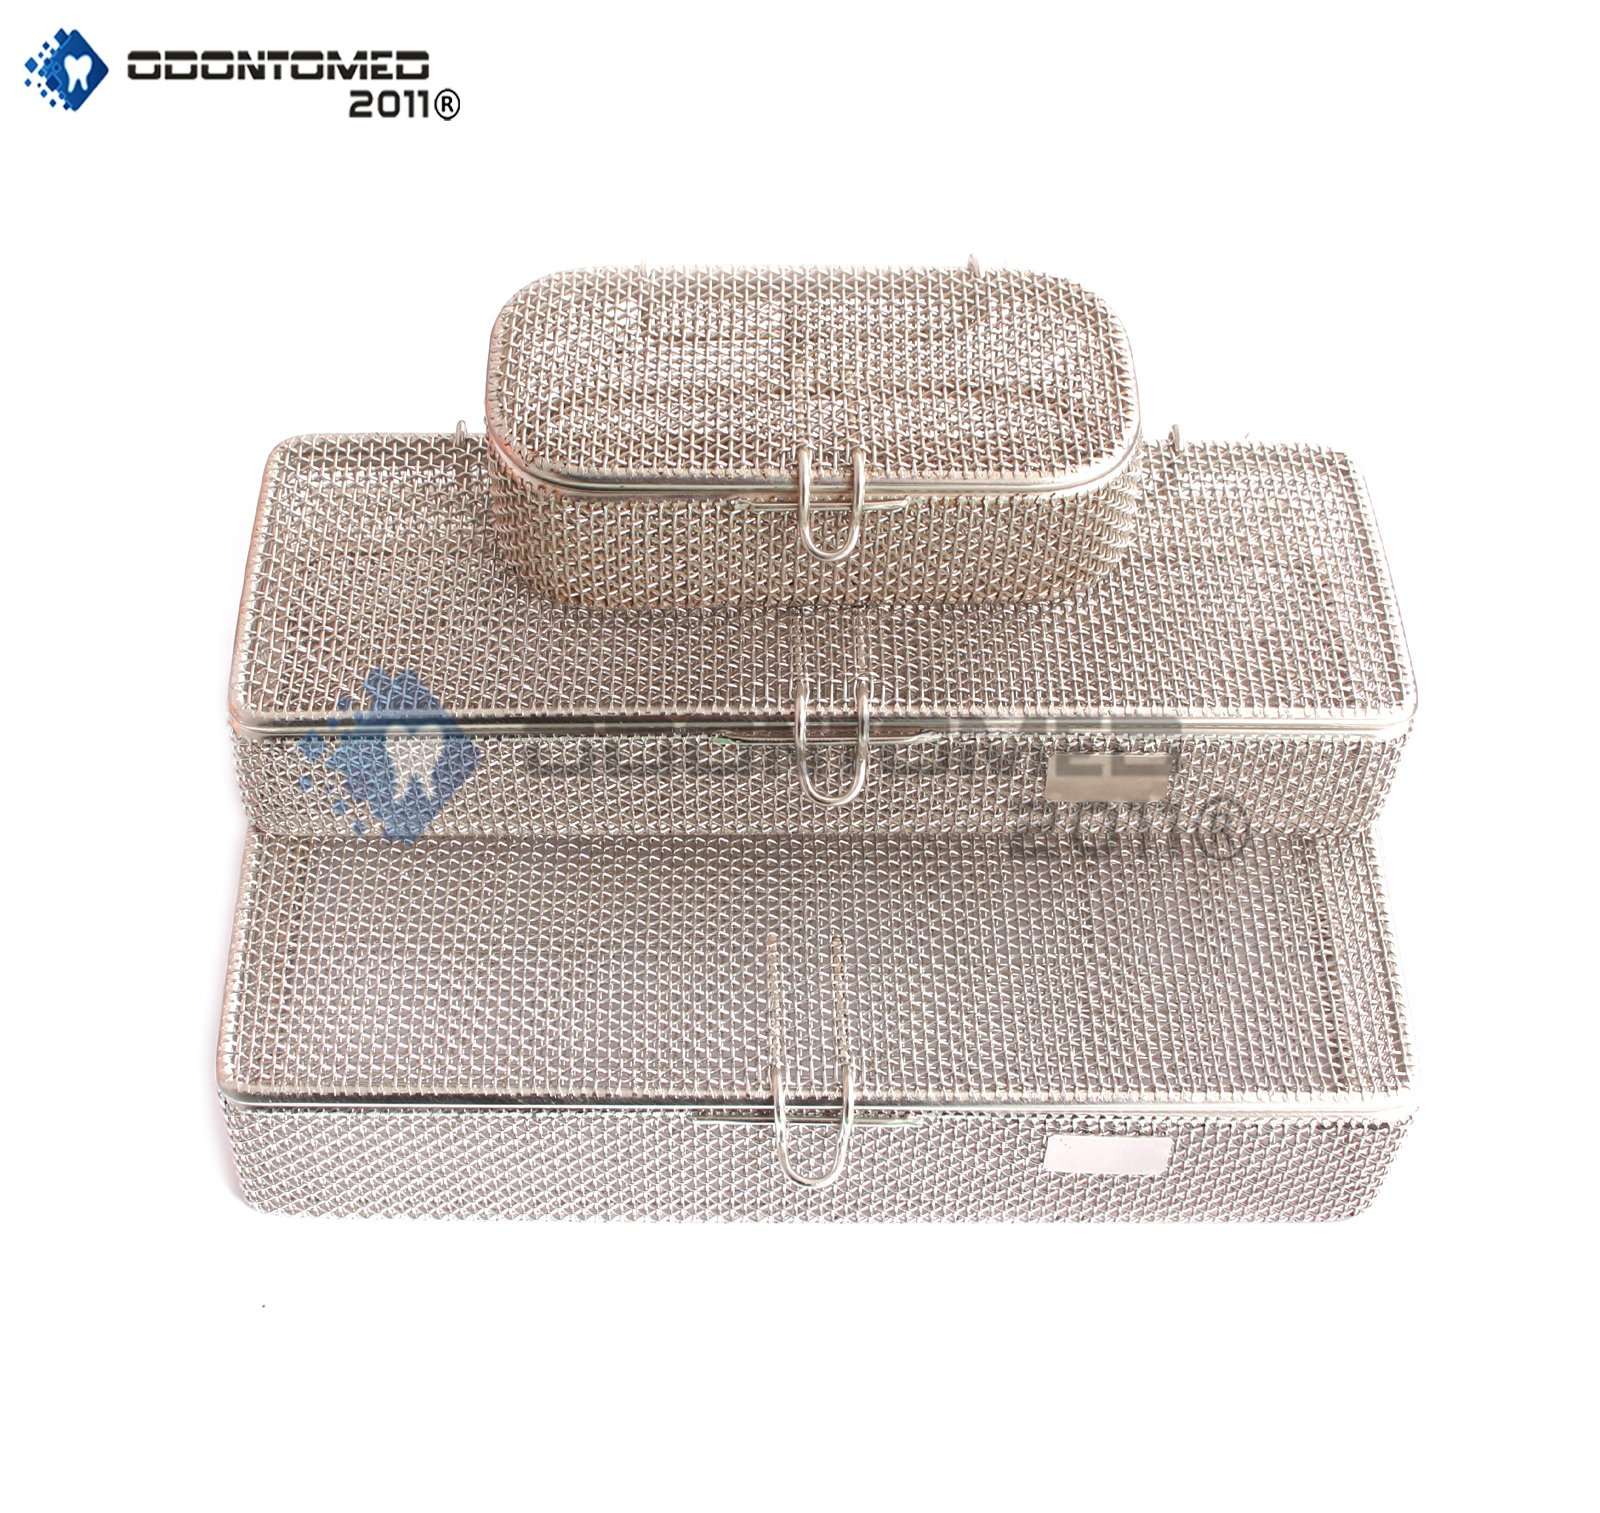 OdontoMed2011 SET OF 3 INSTRUMENT TRAY AND MESH PERFORATED BASKETS STERILIZATION TRAY WITH LID STAINLESS STEEL